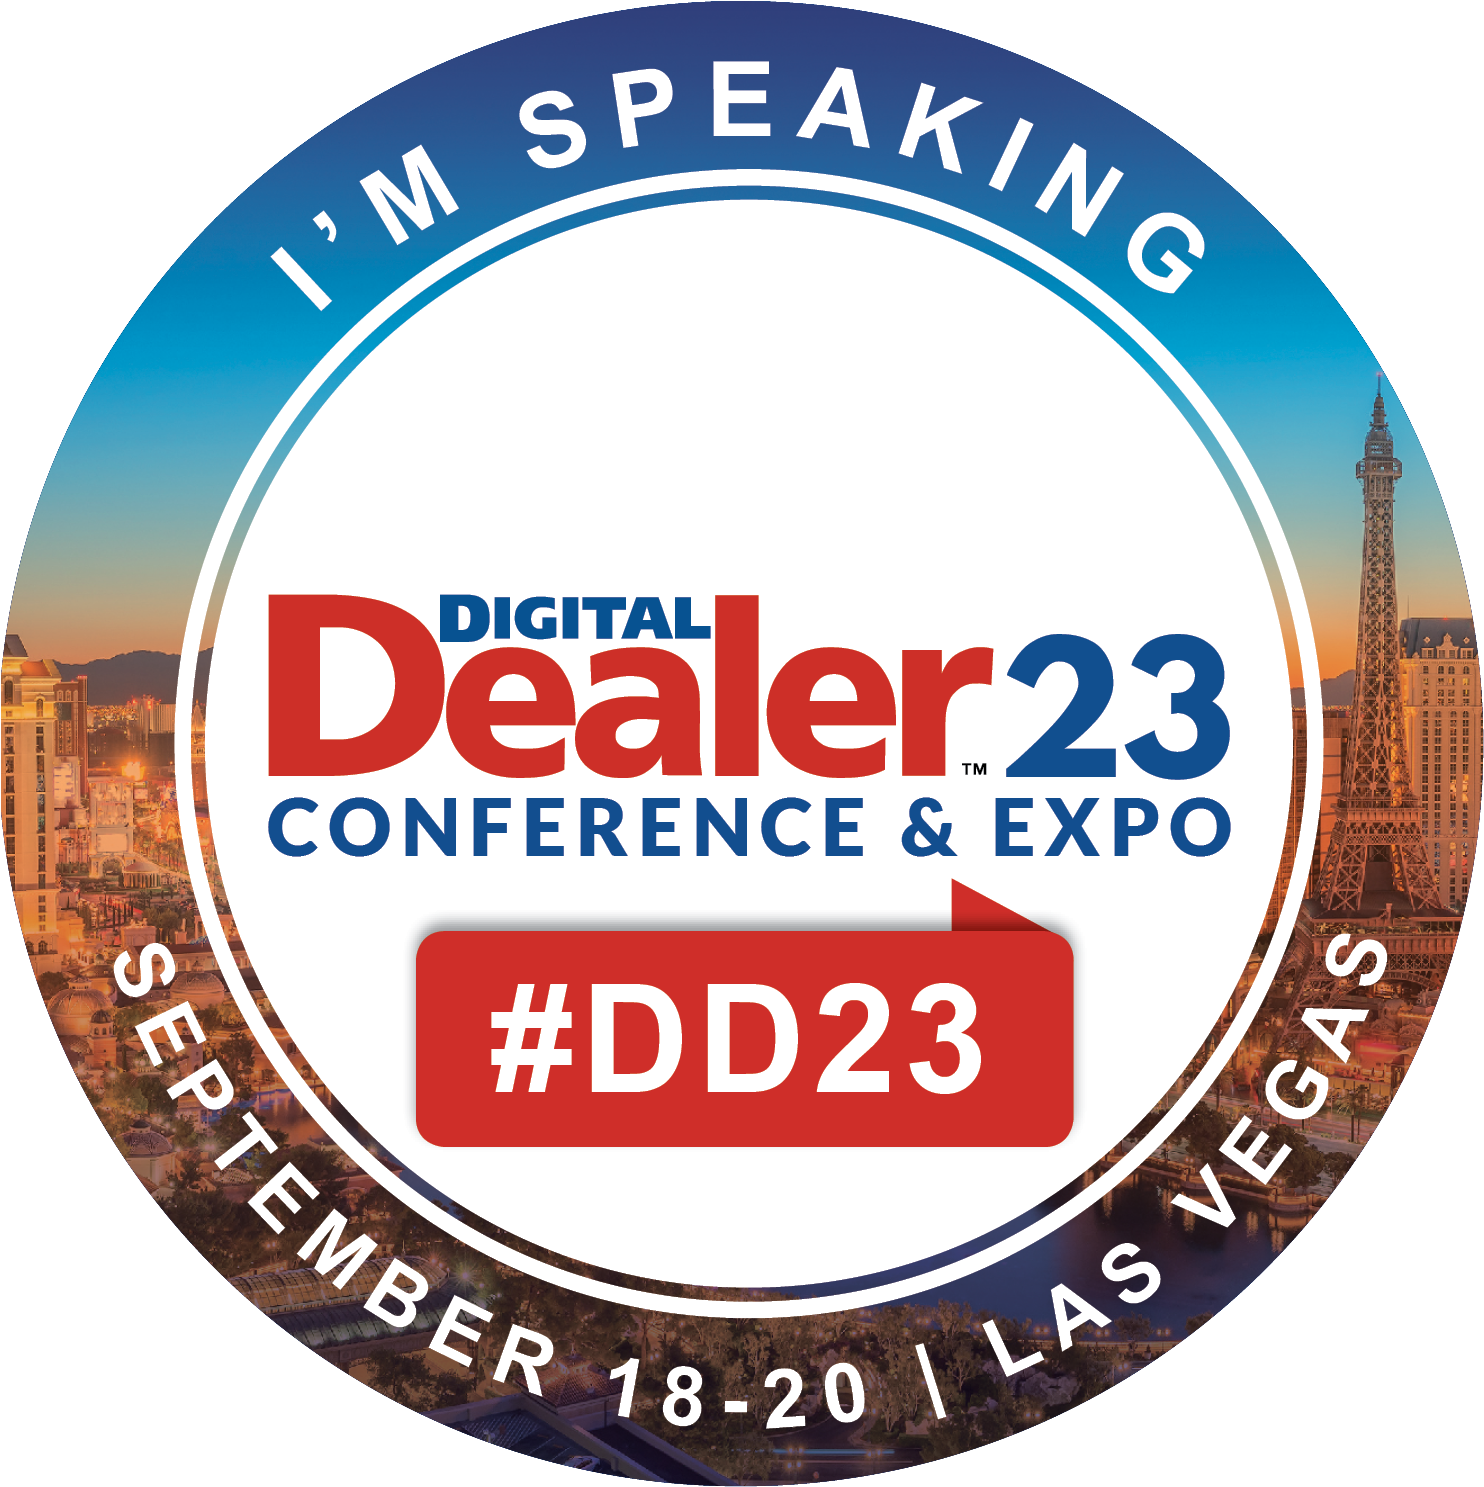 Download Check Out My Session At Digital Dealer 23 In Las Vegas.